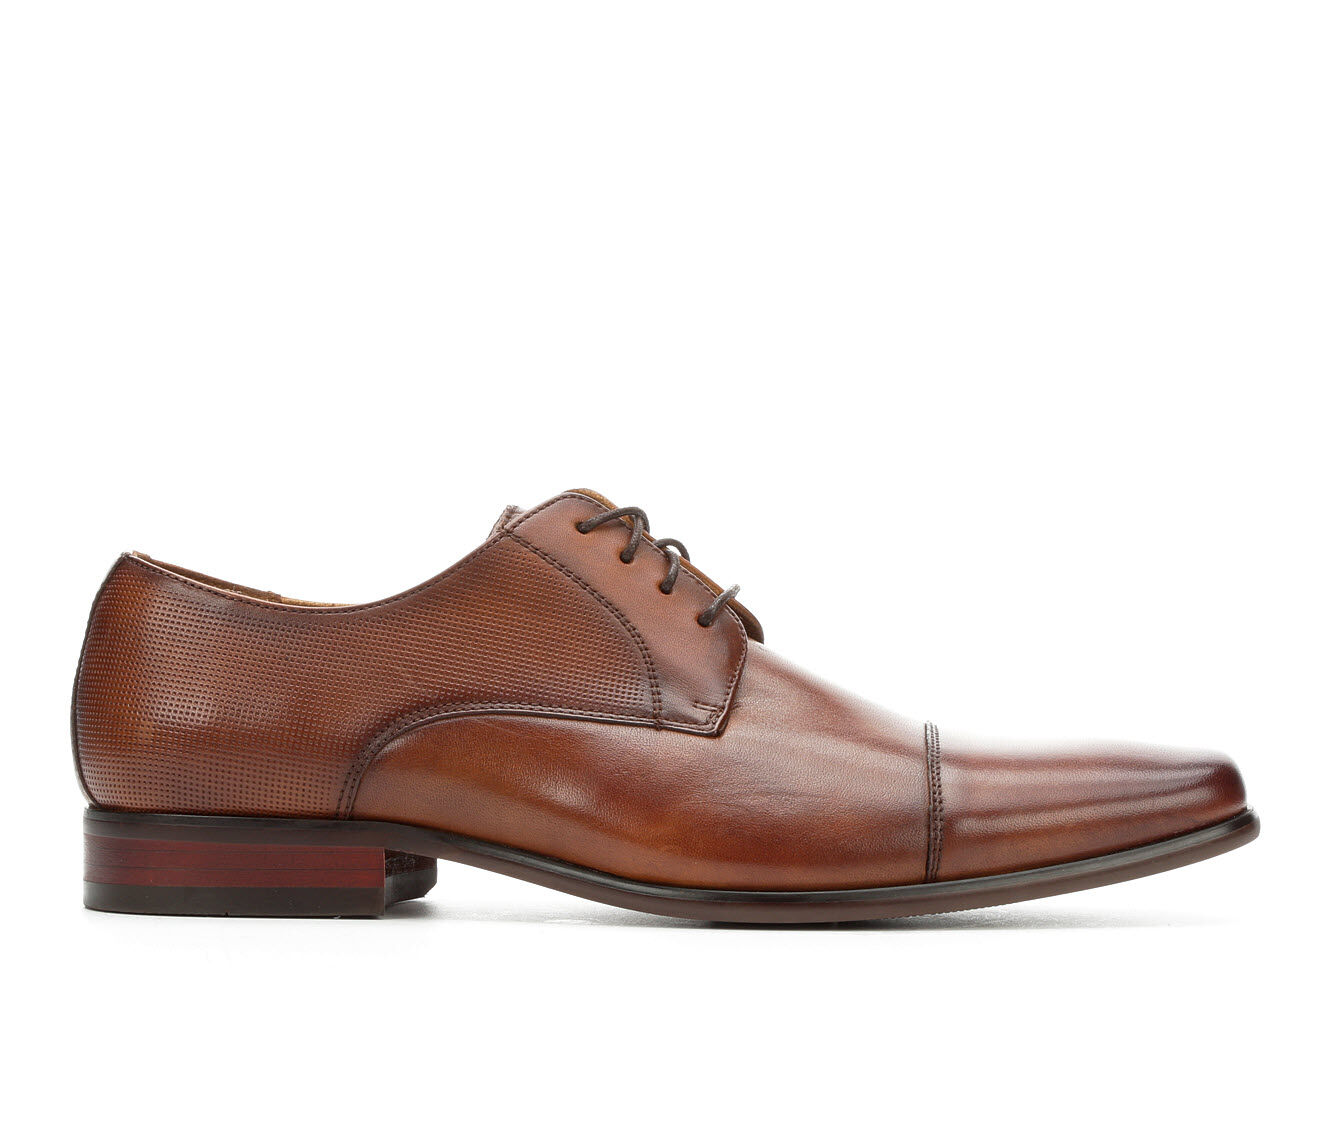 Where To Buy Men's Florsheim Scottsdale Cap Toe Oxford Dress Shoes Cognac